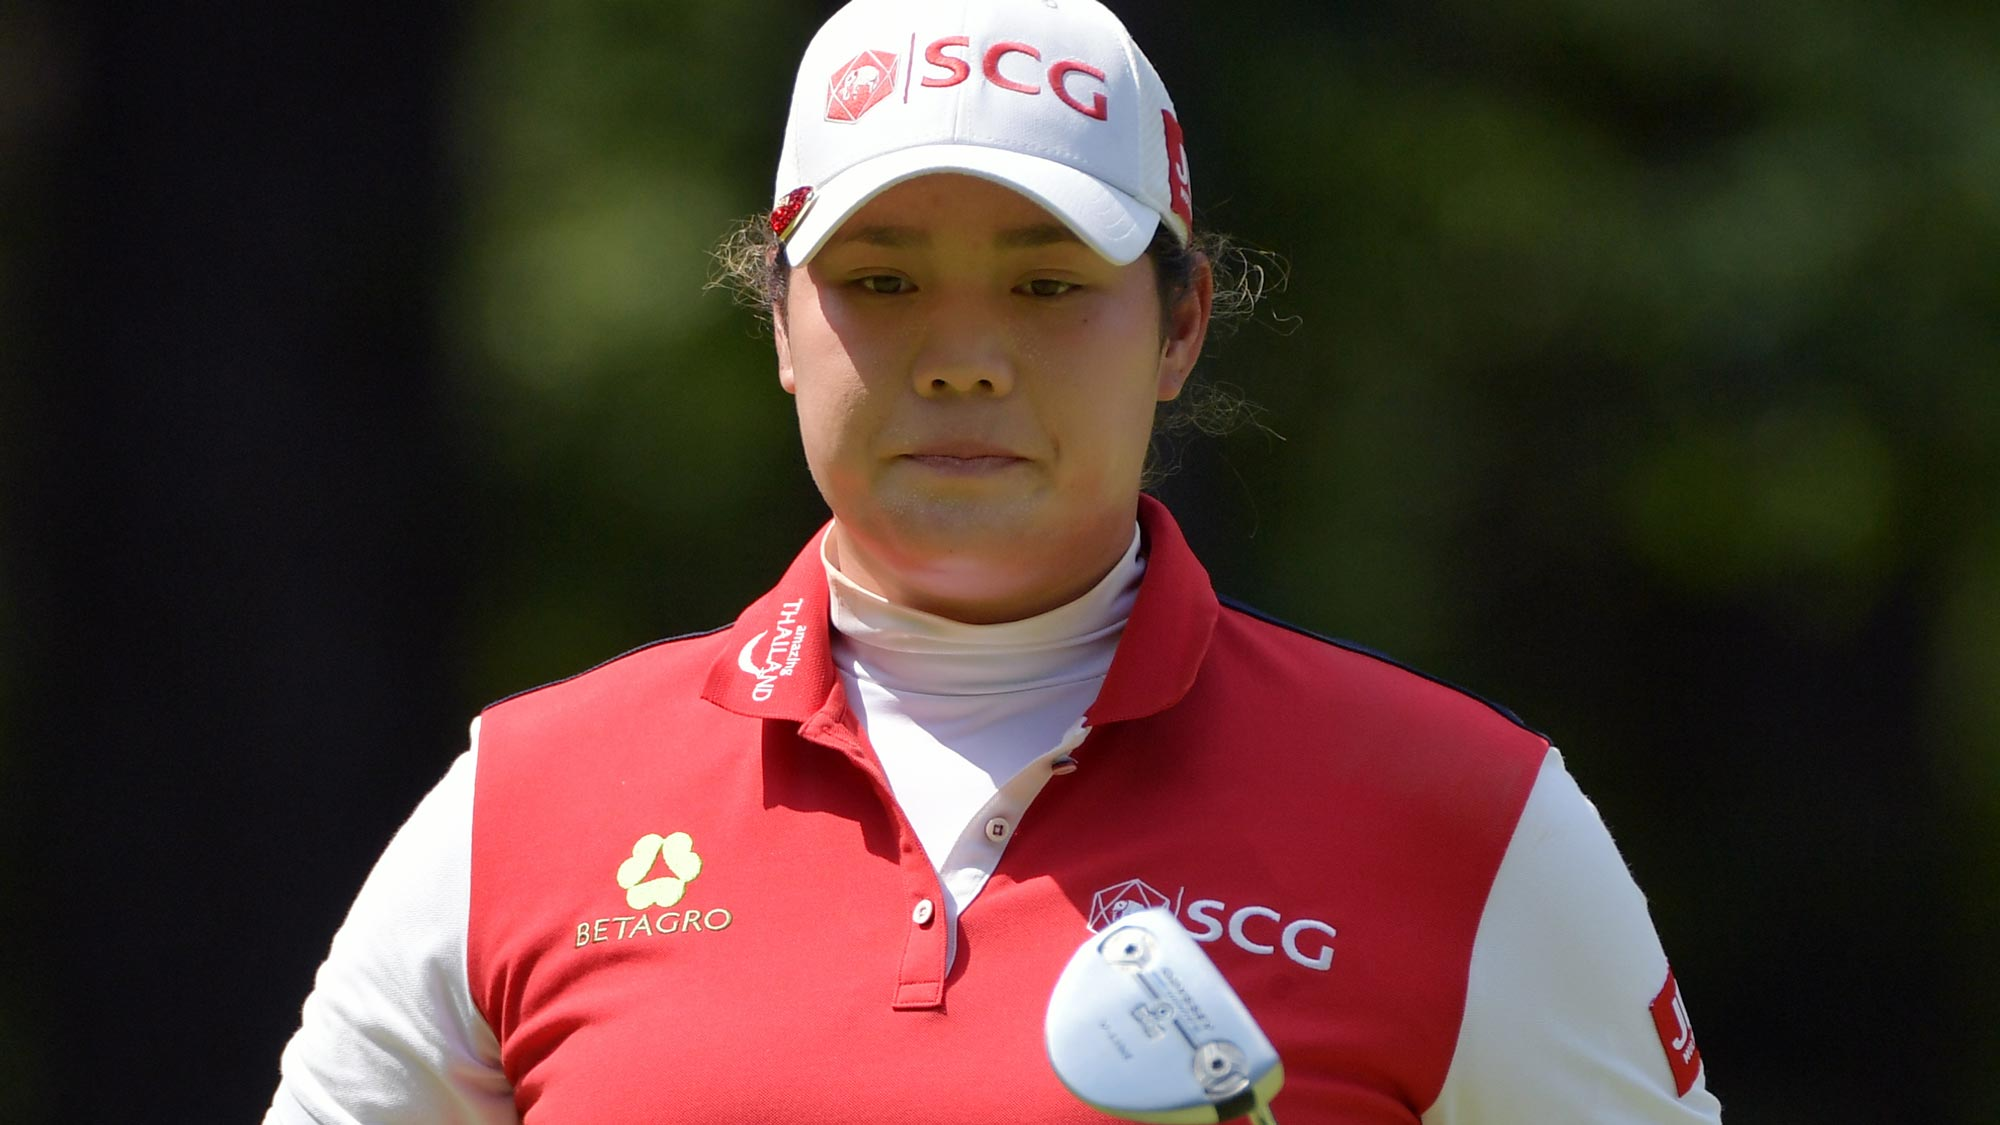 Ariya Jutanugarn of Thailand walks from the first hole after a birdie during the third round of the 2018 U.S. Women's Open